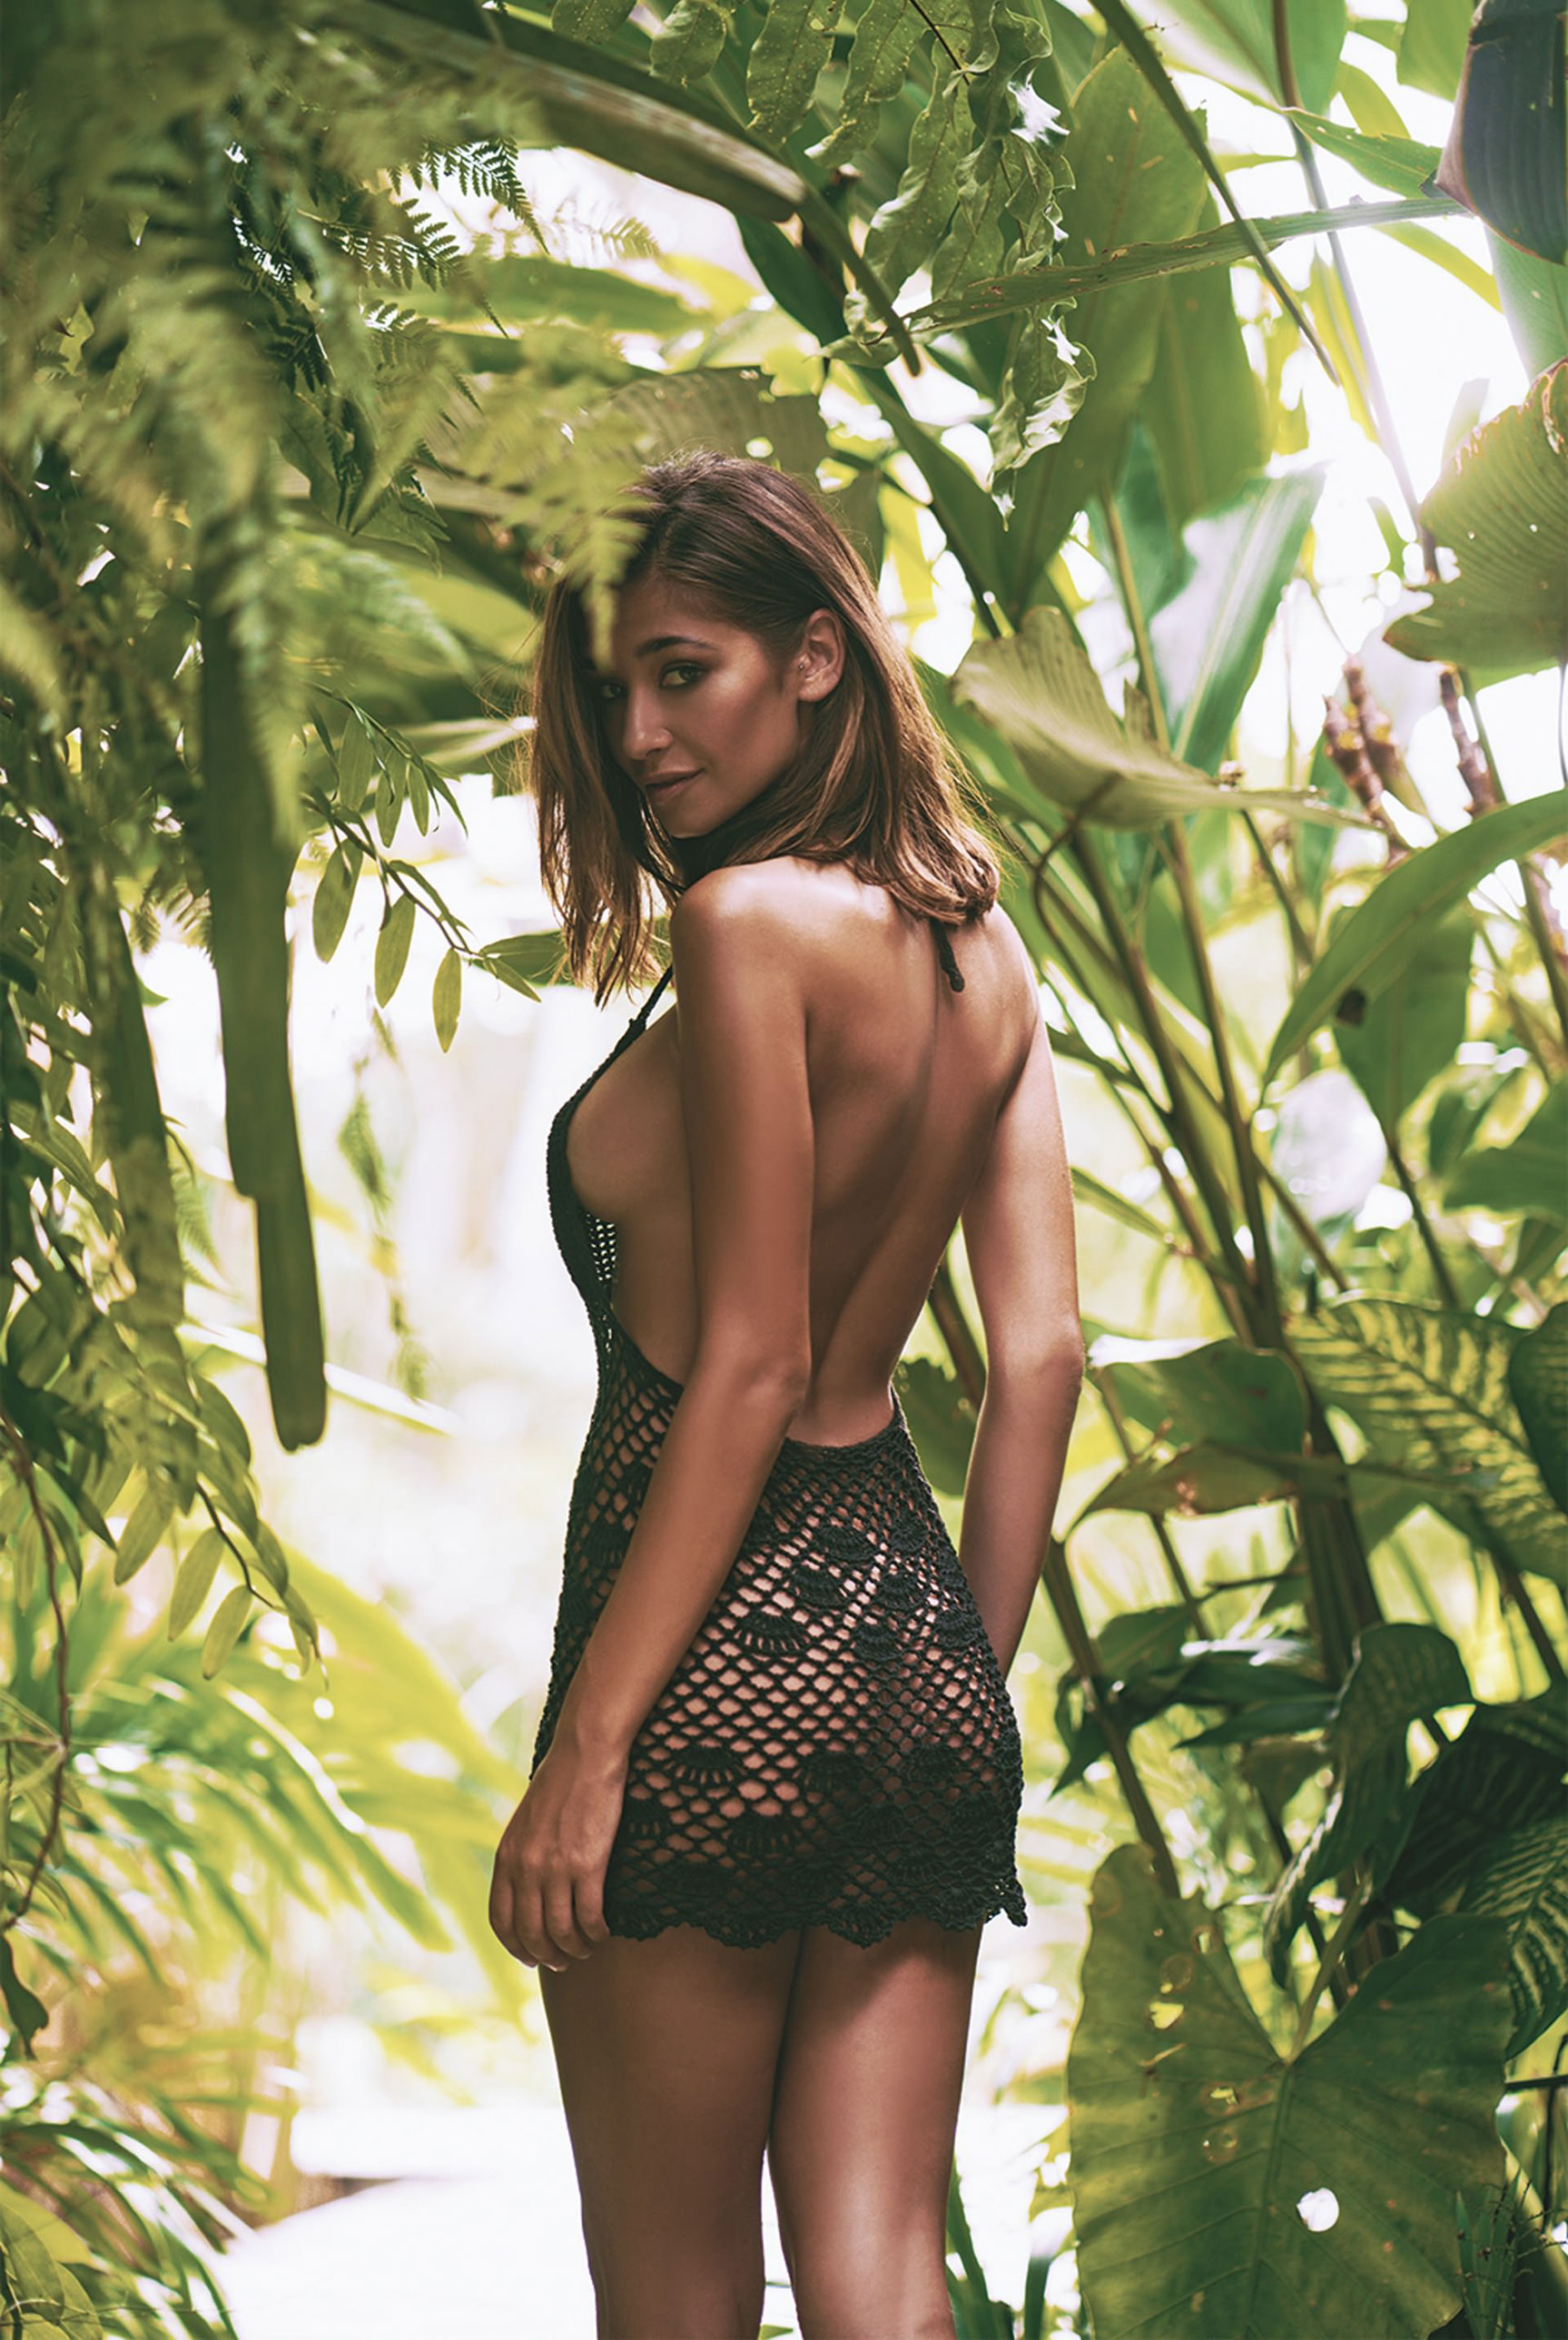 Under the Mangroves / Raluca Cojocaru by Ruby Law - Playboy USA may/june 2018